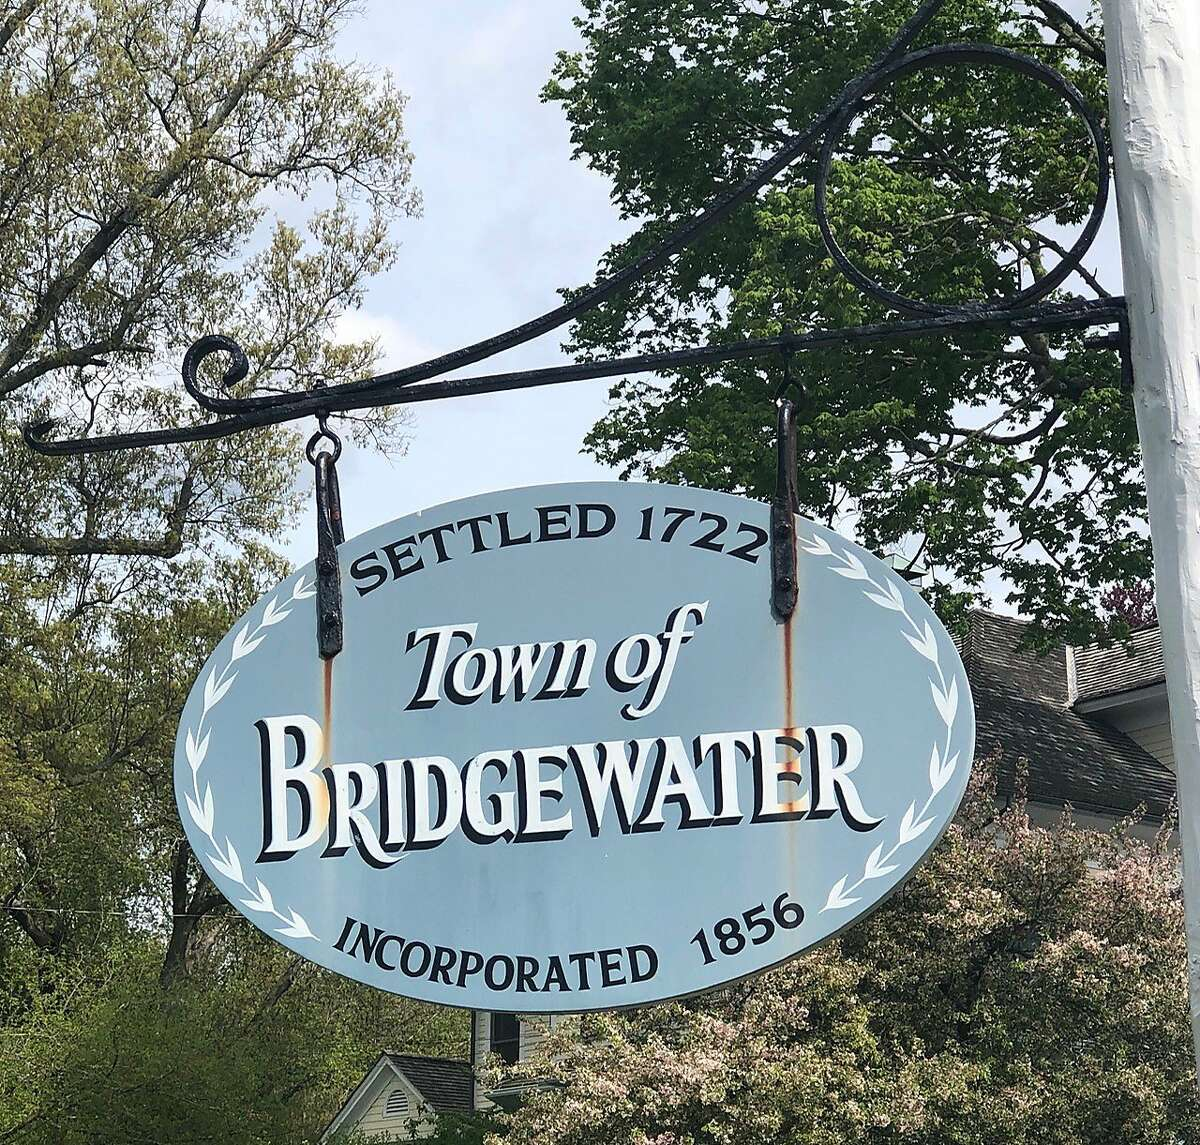 BRIDGEWATER Labor force: 757 Unemployed: 54 Unemployment Rate: 7.1% Source: Connecticut Department of Labor